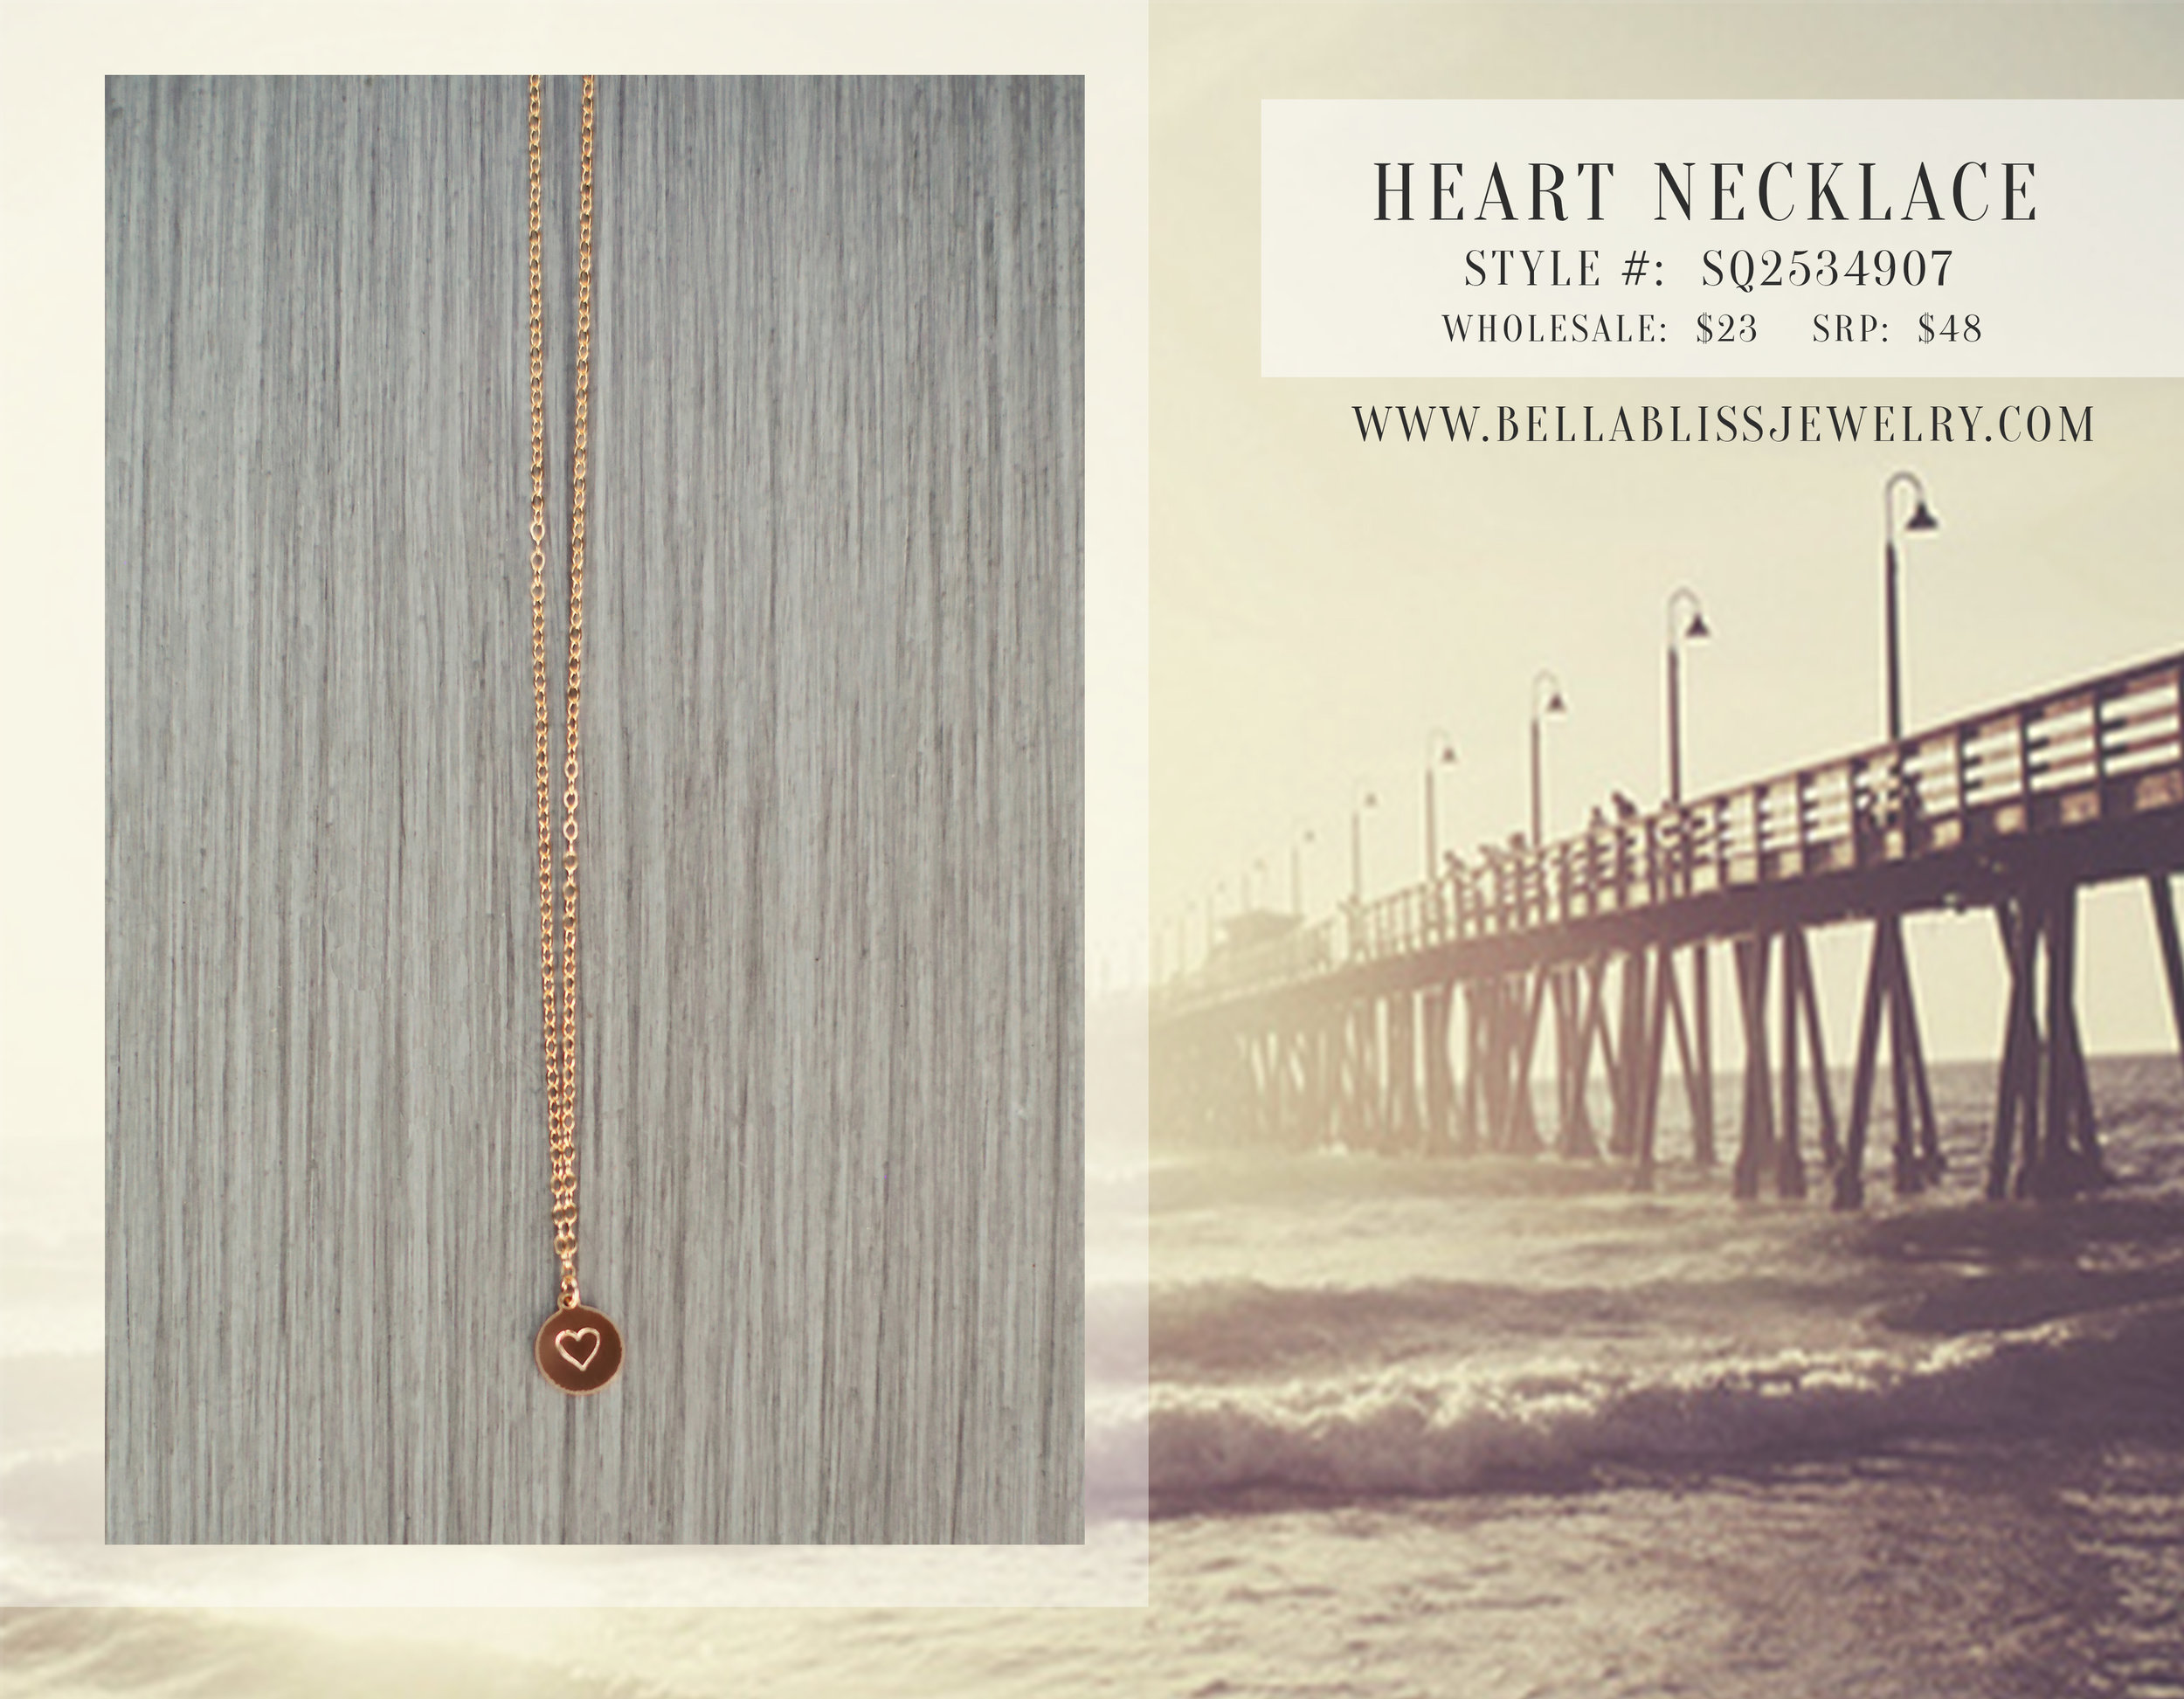 HeartNecklaceLookbook.jpg